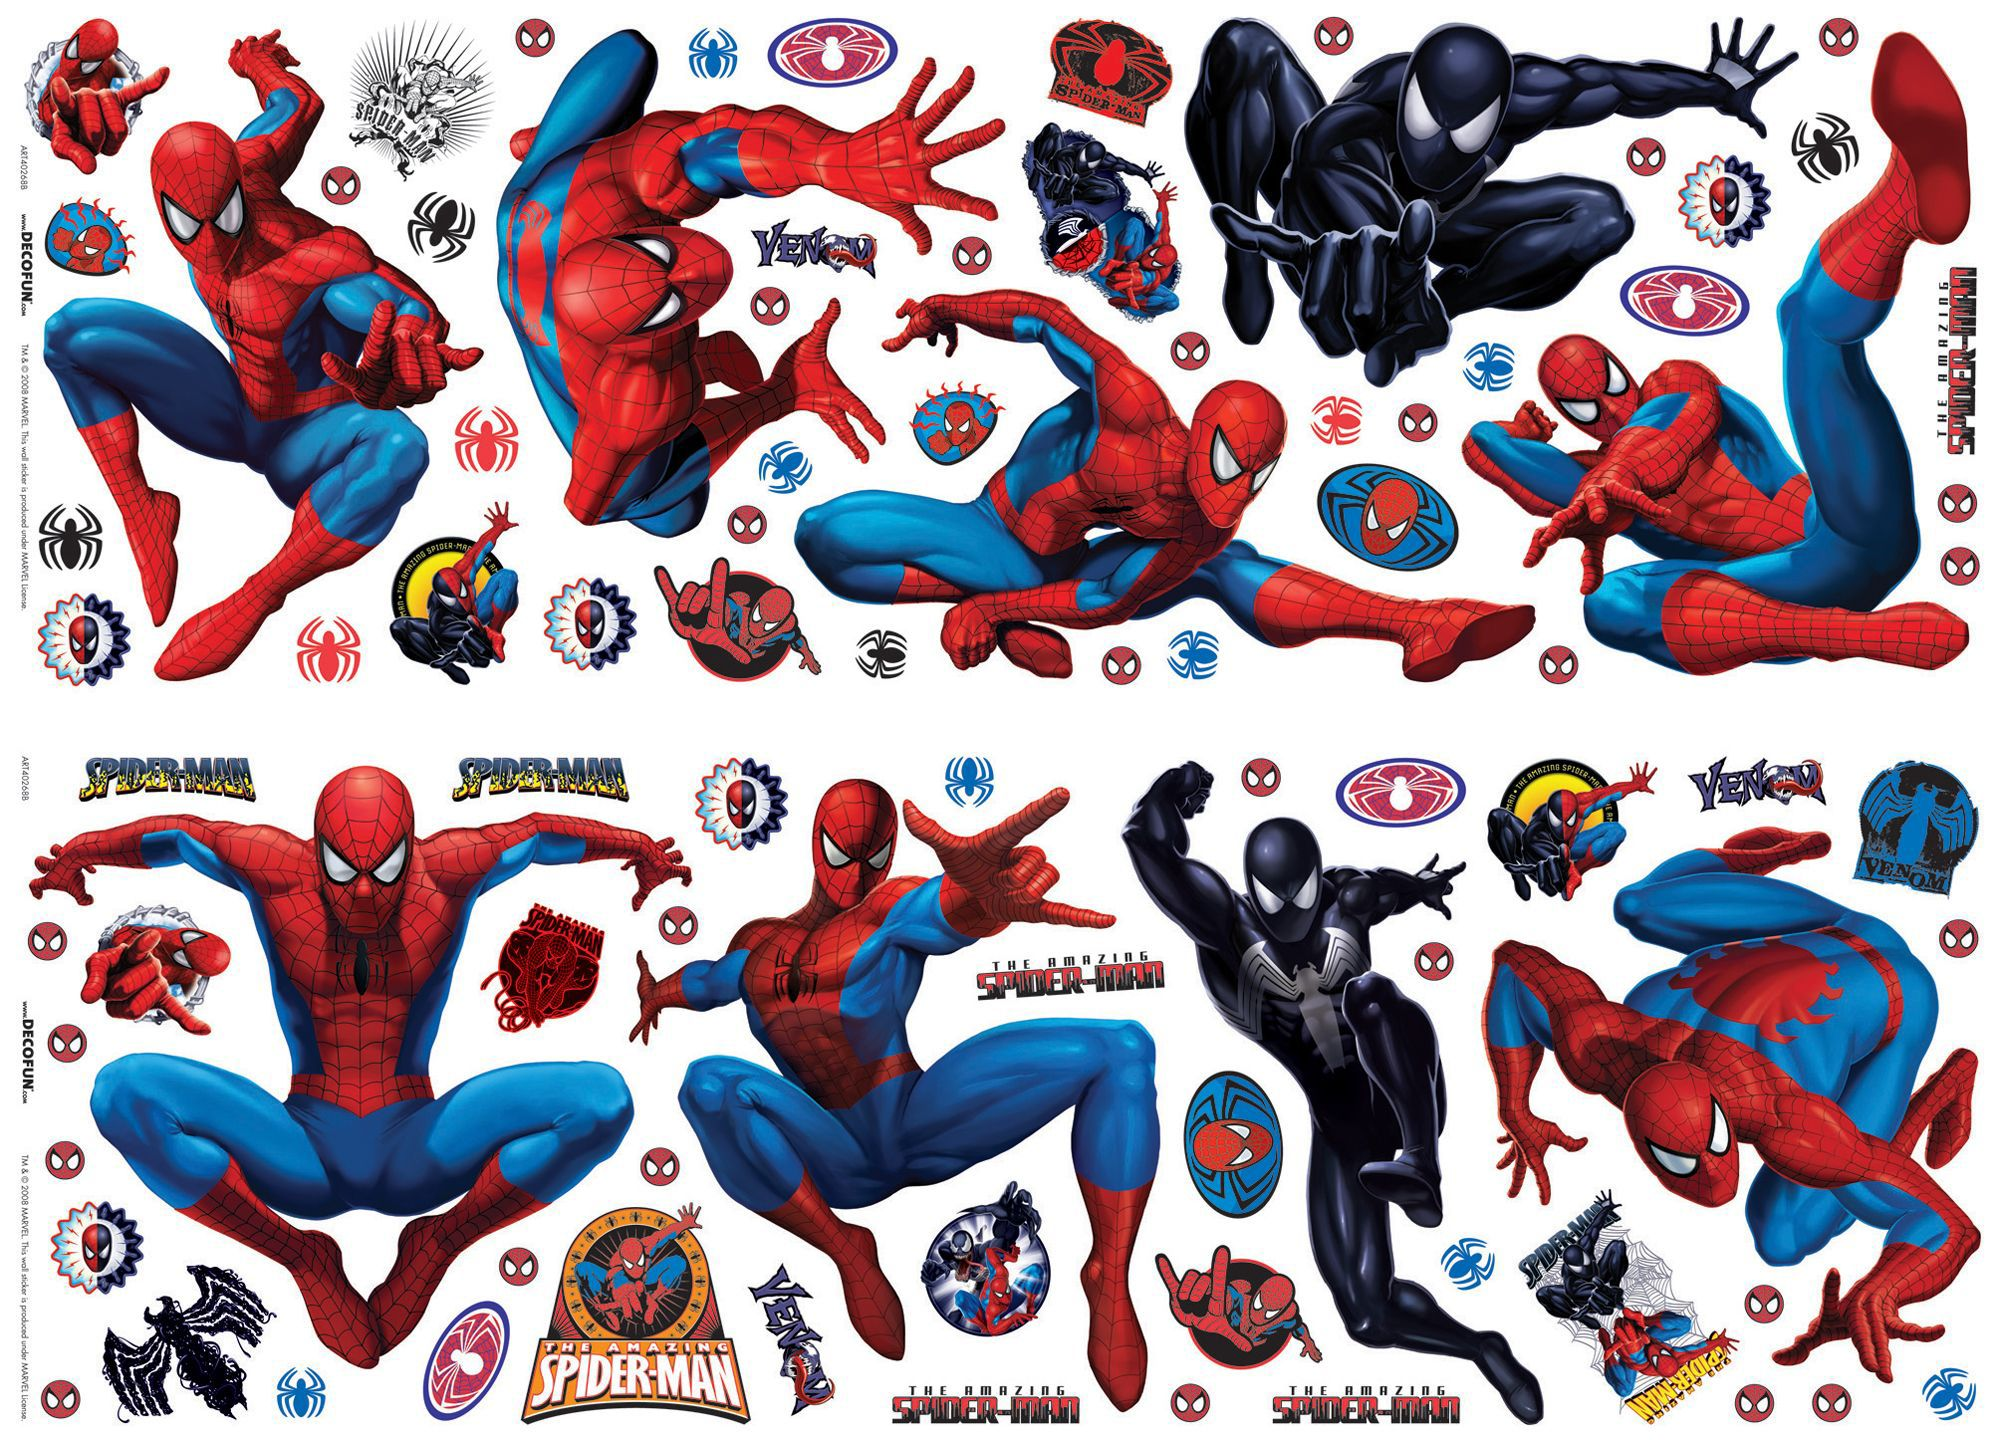 Marvel spiderman multicolour self adhesive wall sticker l700mm marvel spiderman multicolour self adhesive wall sticker l700mm w250mm departments diy at bq amipublicfo Image collections